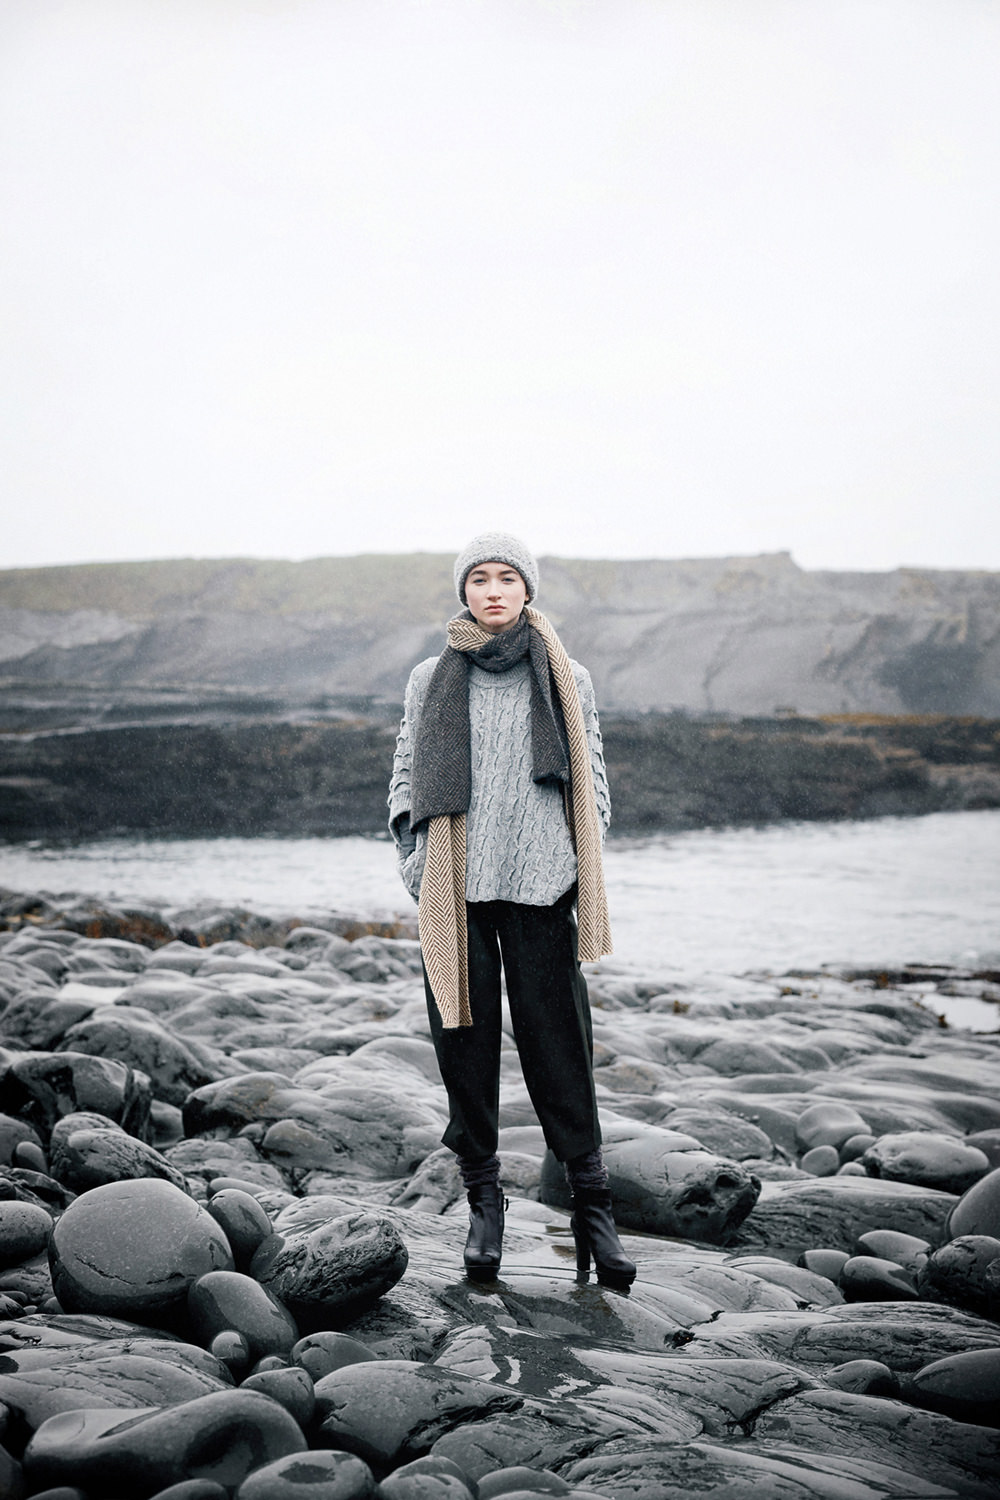 Aine McConnells Knitwear in the West of Ireland shot by Johnny McMillan 1.jpg